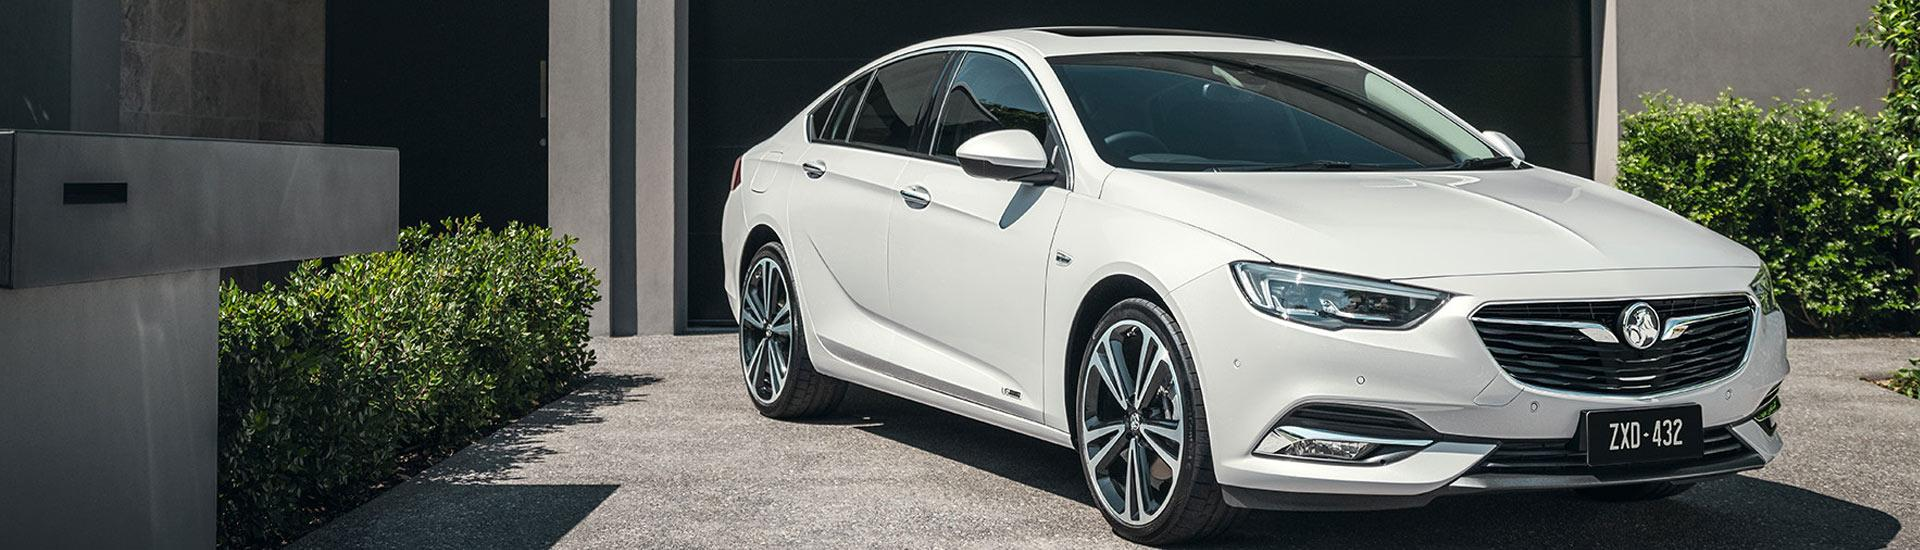 New Holden Cars for Sale in Australia - carsales.com.au